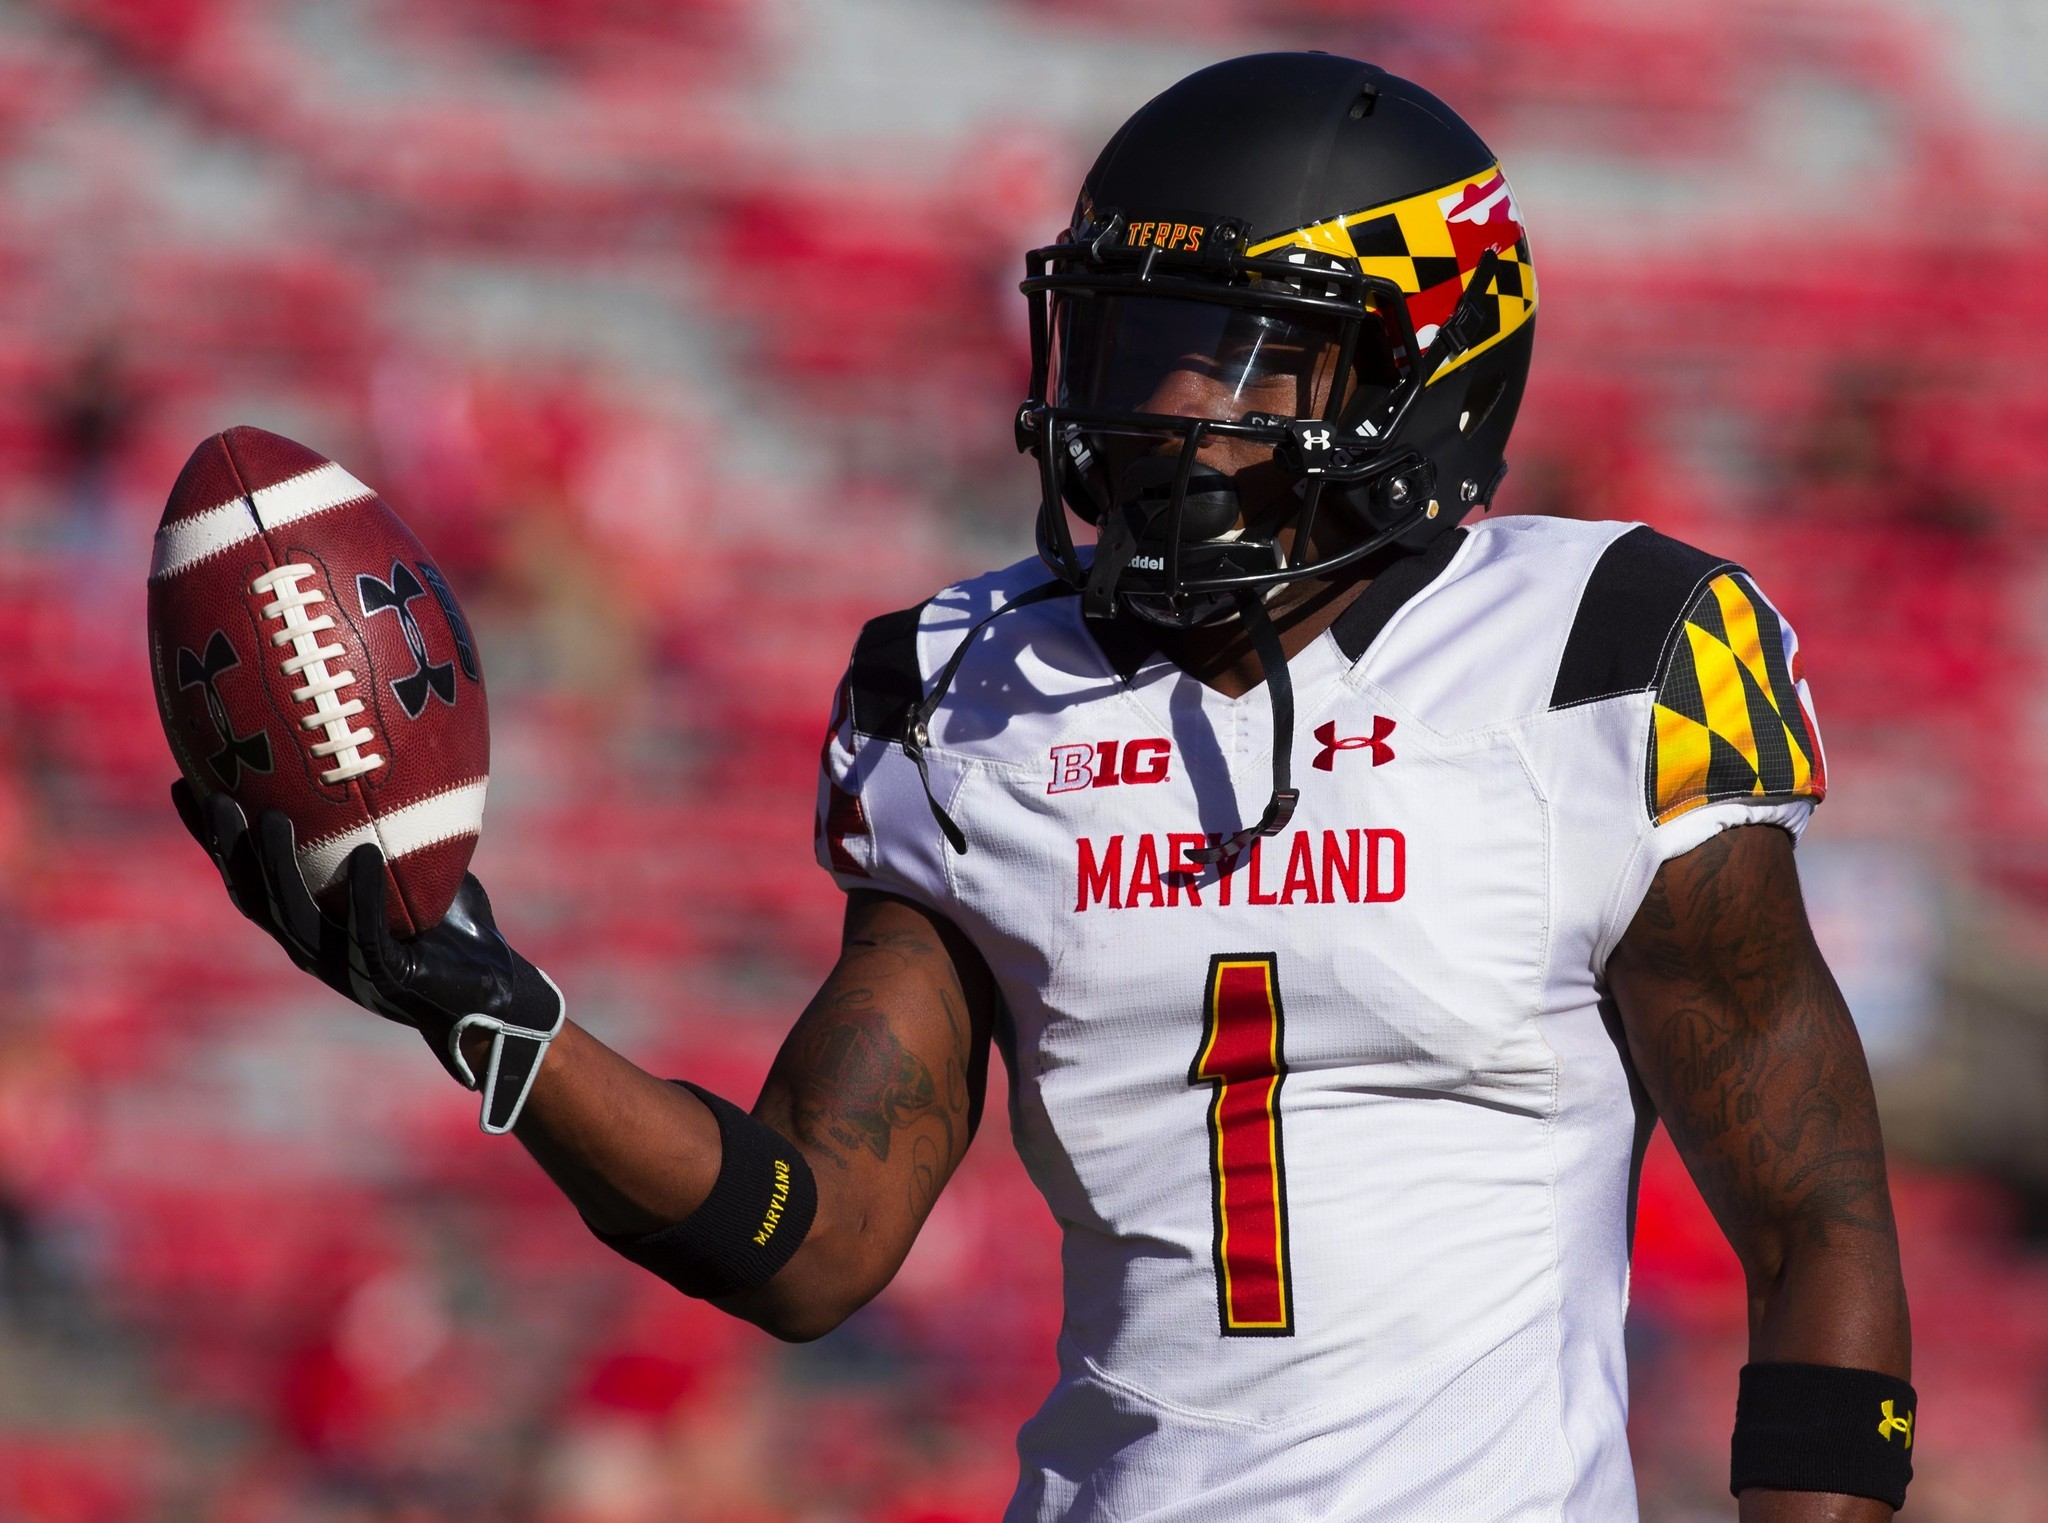 Steelers Wallpaper Hd Former Maryland Terps Wide Receiver Stefon Diggs Signs